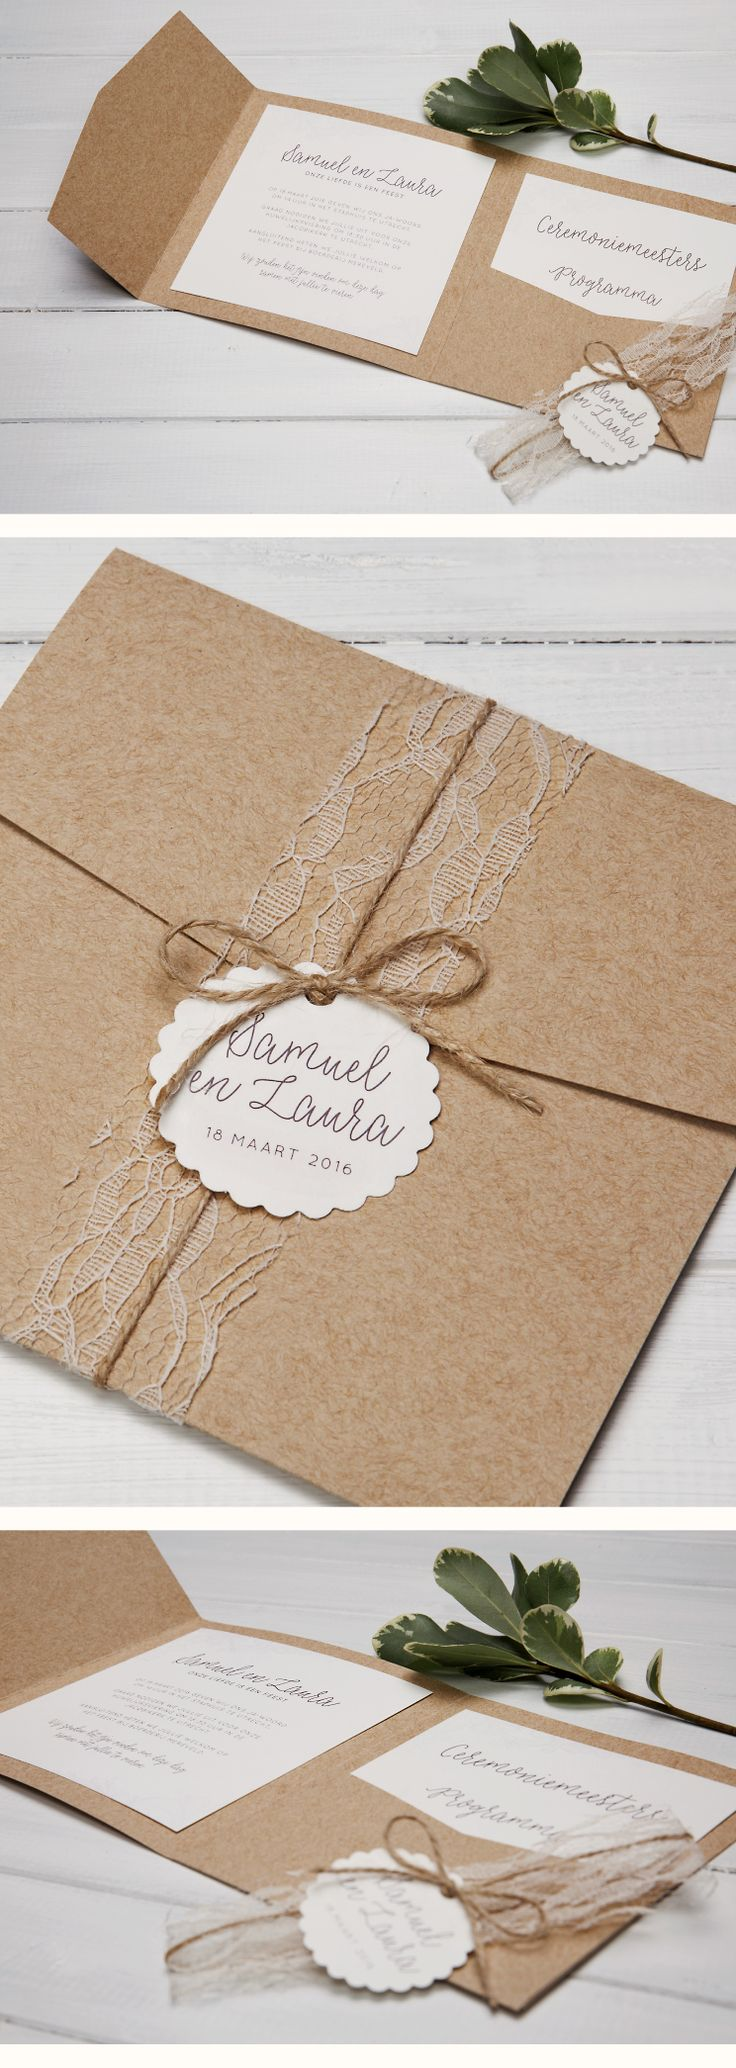 Beautiful kraft pocketfolds combined with ivory lace, ribbon and name tags. A stunning rustic inspired weddinginvitation set.